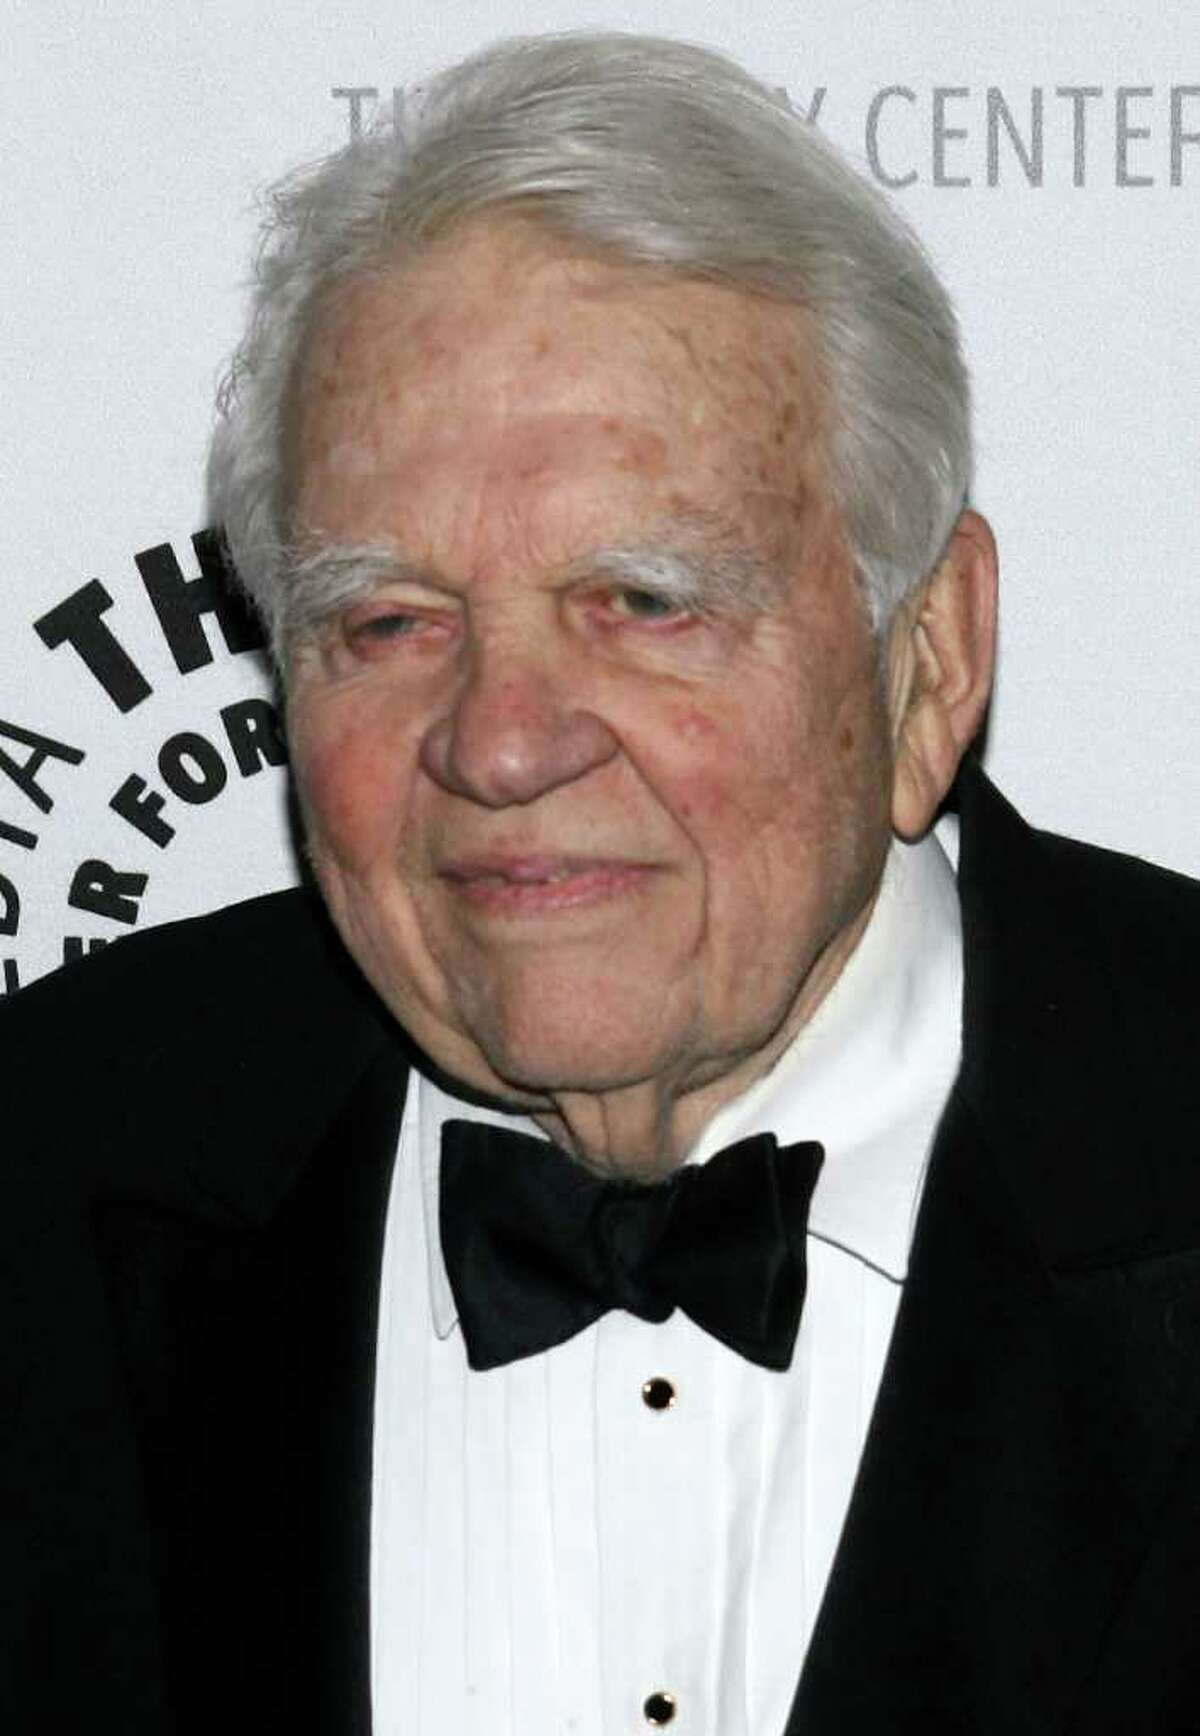 Yesterday, Andy Rooney officially announced his departure from CBS's